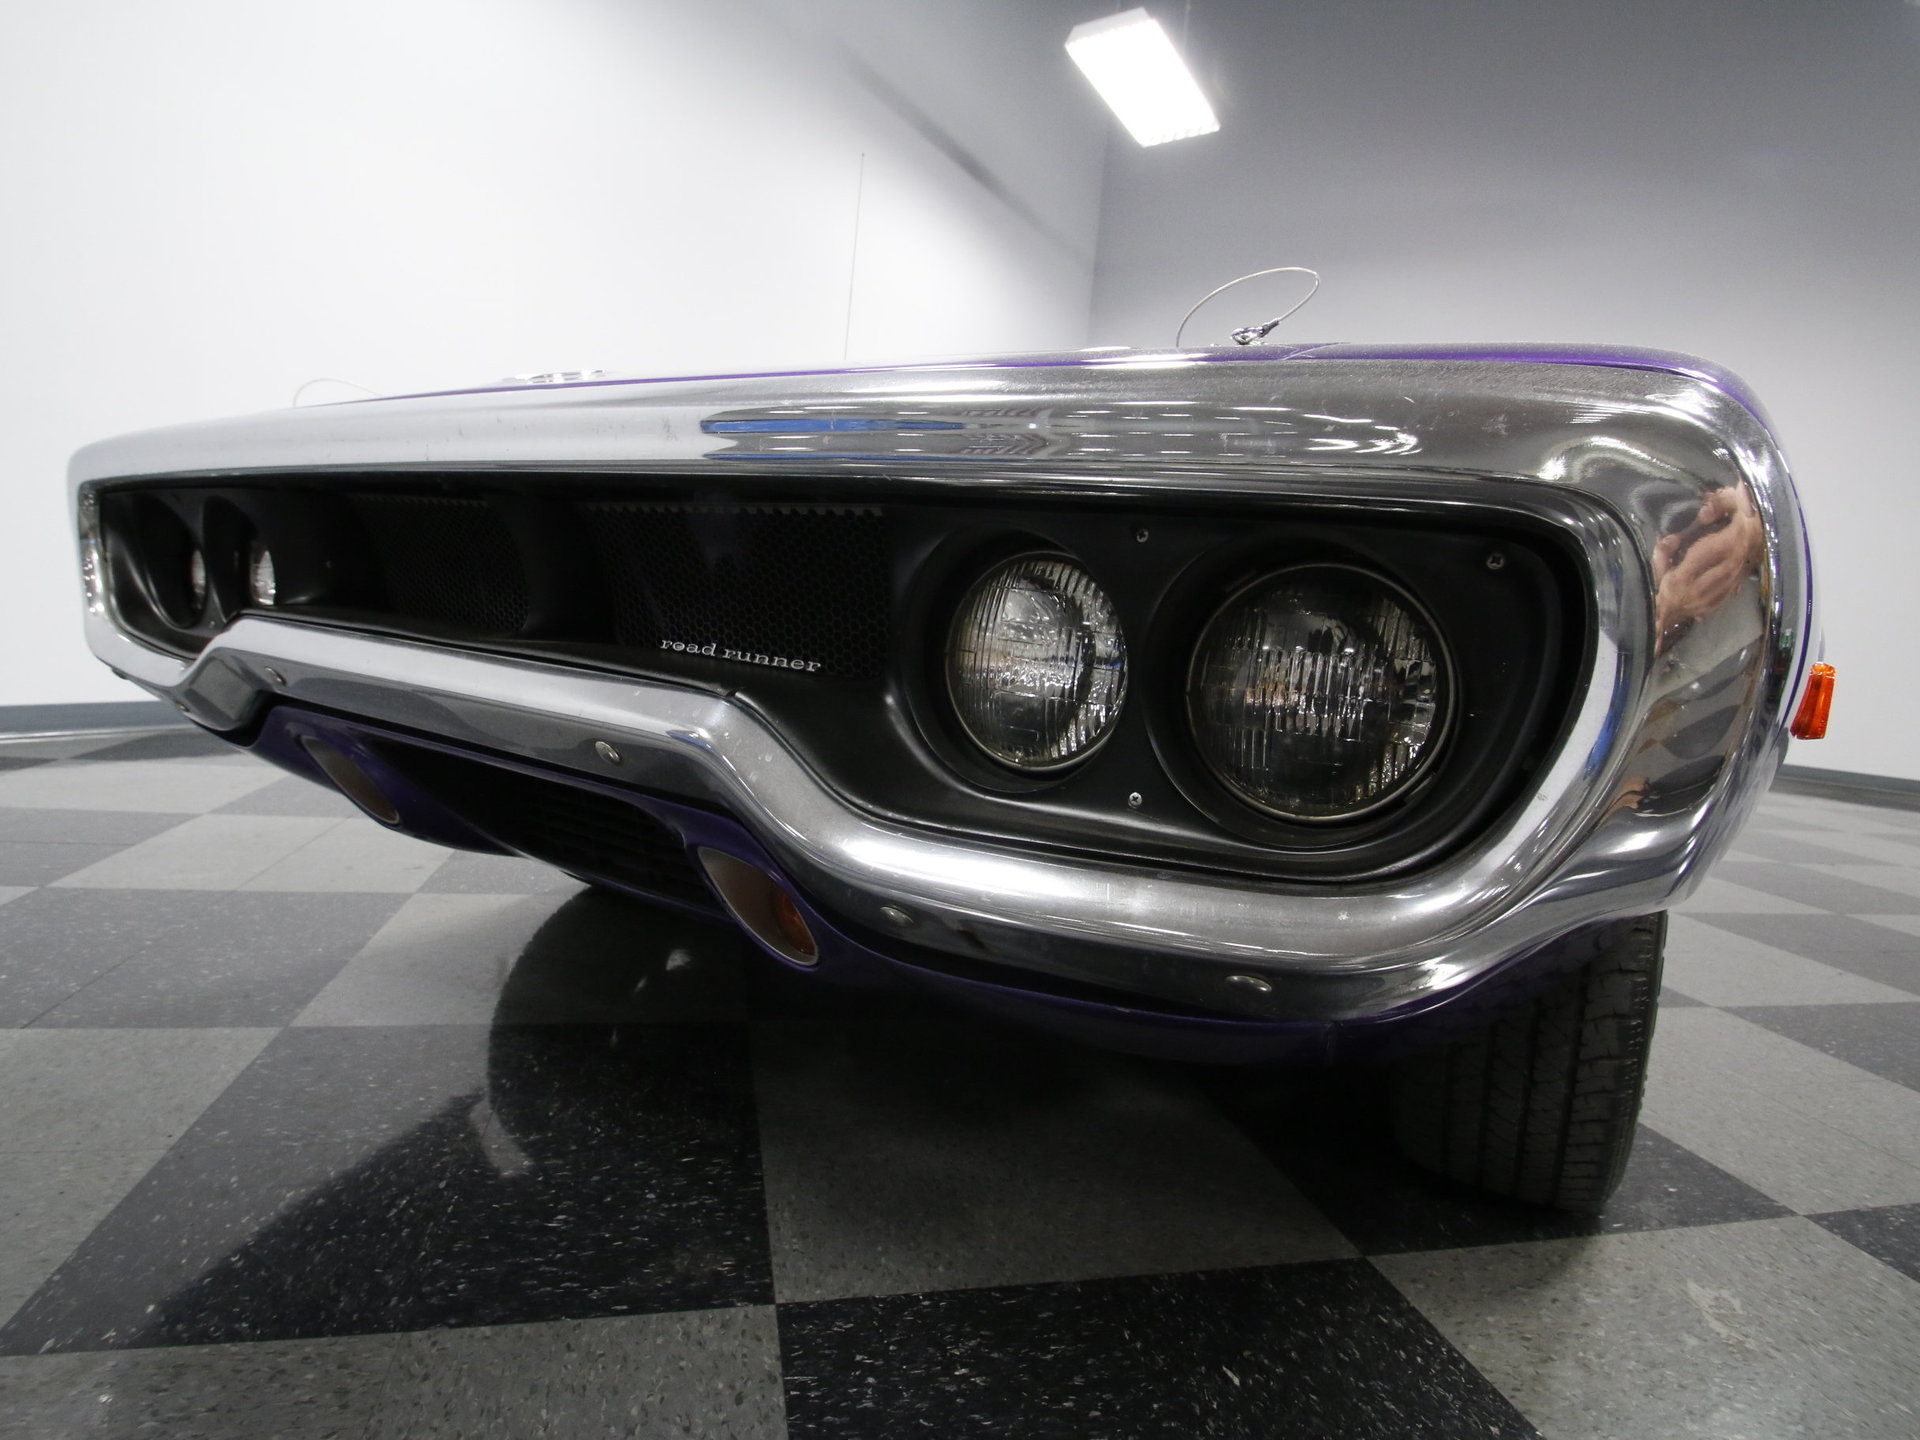 1972 Plymouth Road Runner Streetside Classics The Nations Engine Bay Diagram View 360